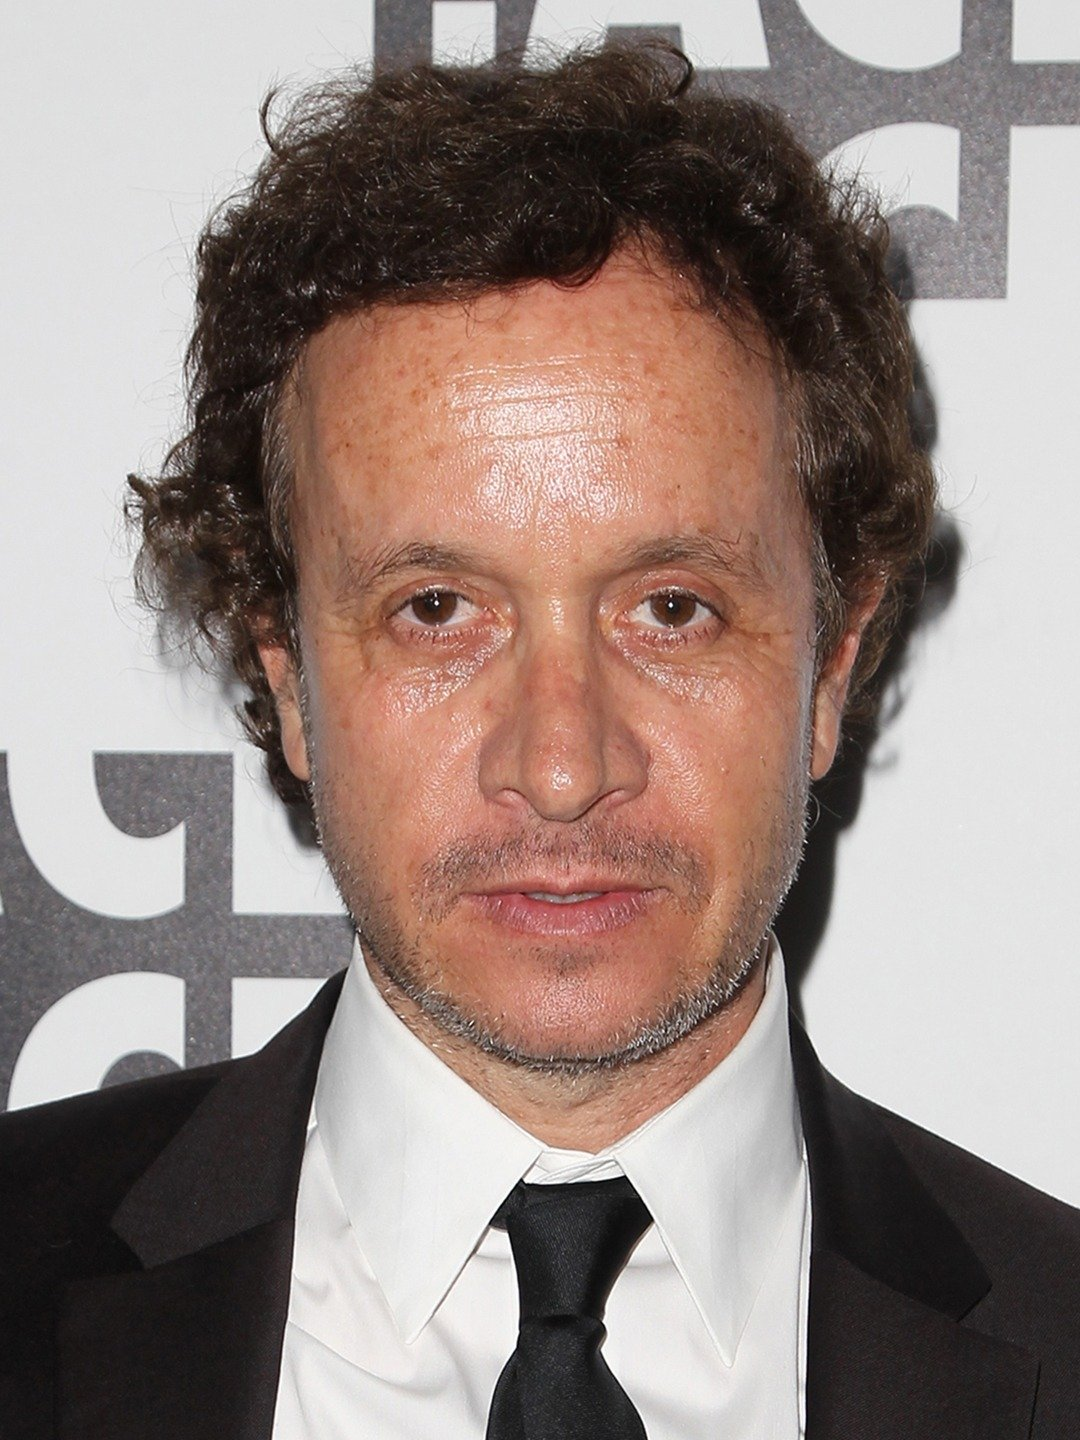 pauly shore in the army nowpauly shore is dead, pauly shore show, pauly shore jury duty, pauly shore the future of america, pauly shore is dead watch online, pauly shore instagram, pauly shore net worth, pauly shore best movies, pauly shore joe rogan, pauly shore limp bizkit, pauly shore height, pauly shore family guy, pauly shore entourage, pauly shore, pauly shore movies, pauly shore wife, pauly shore stand up, pauly shore in the army now, pauly shore biodome, pauly shore young